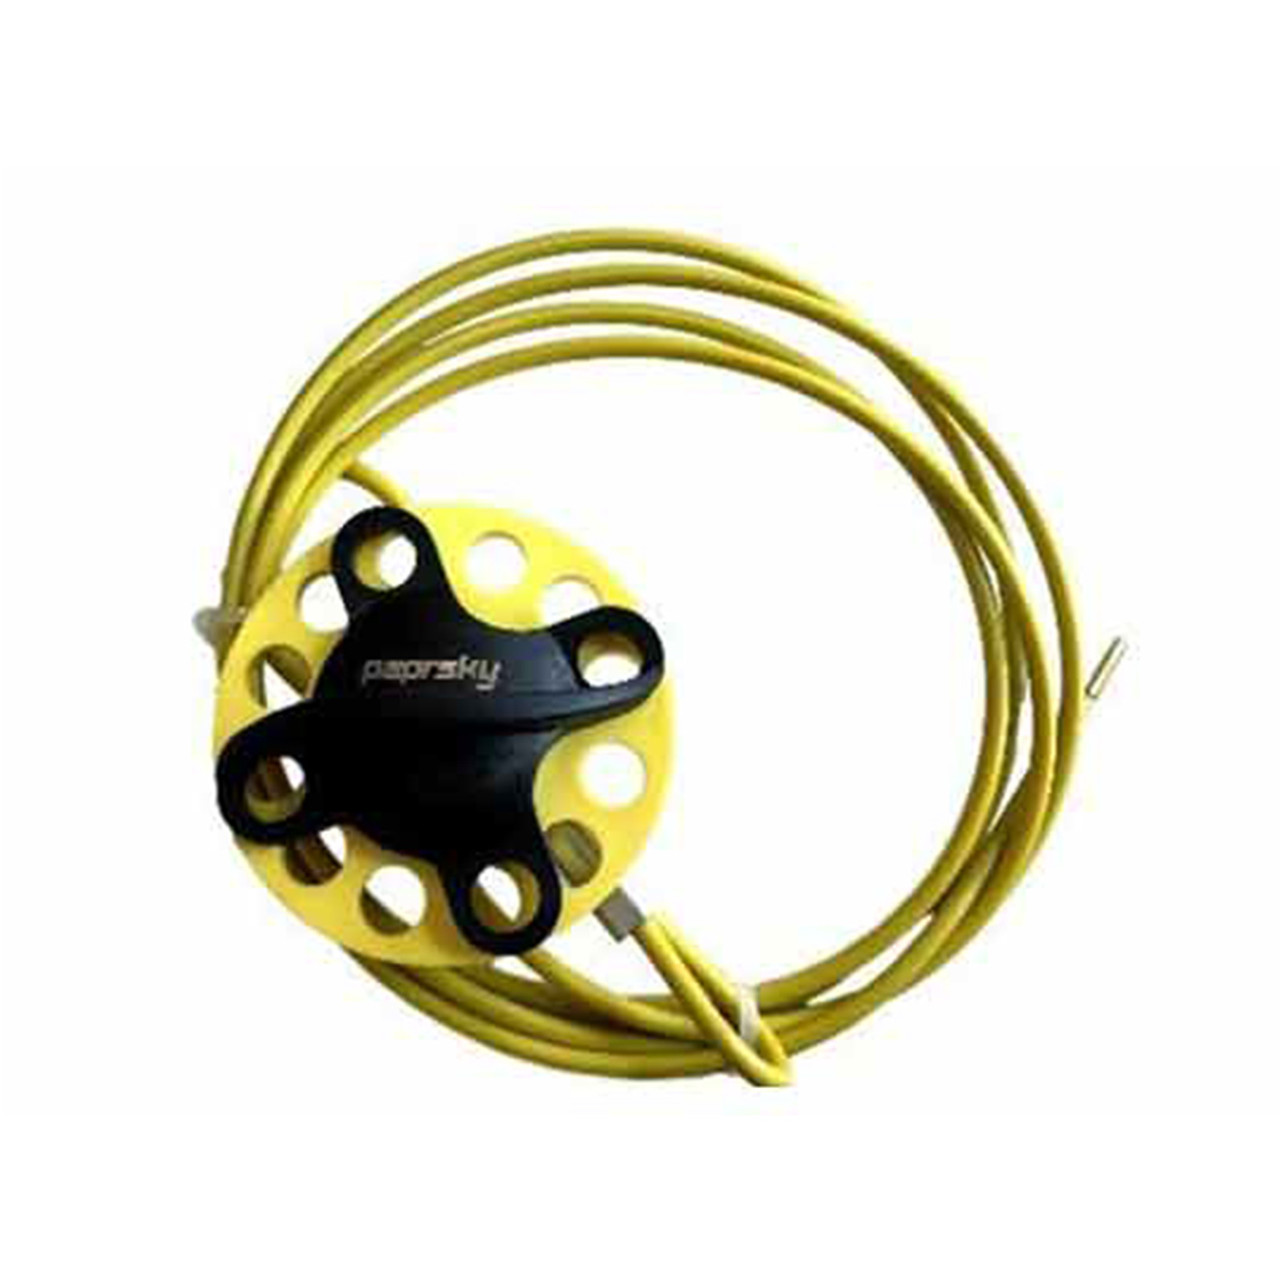 Wheel Cable lockout PS-LOTO-WMCL2C